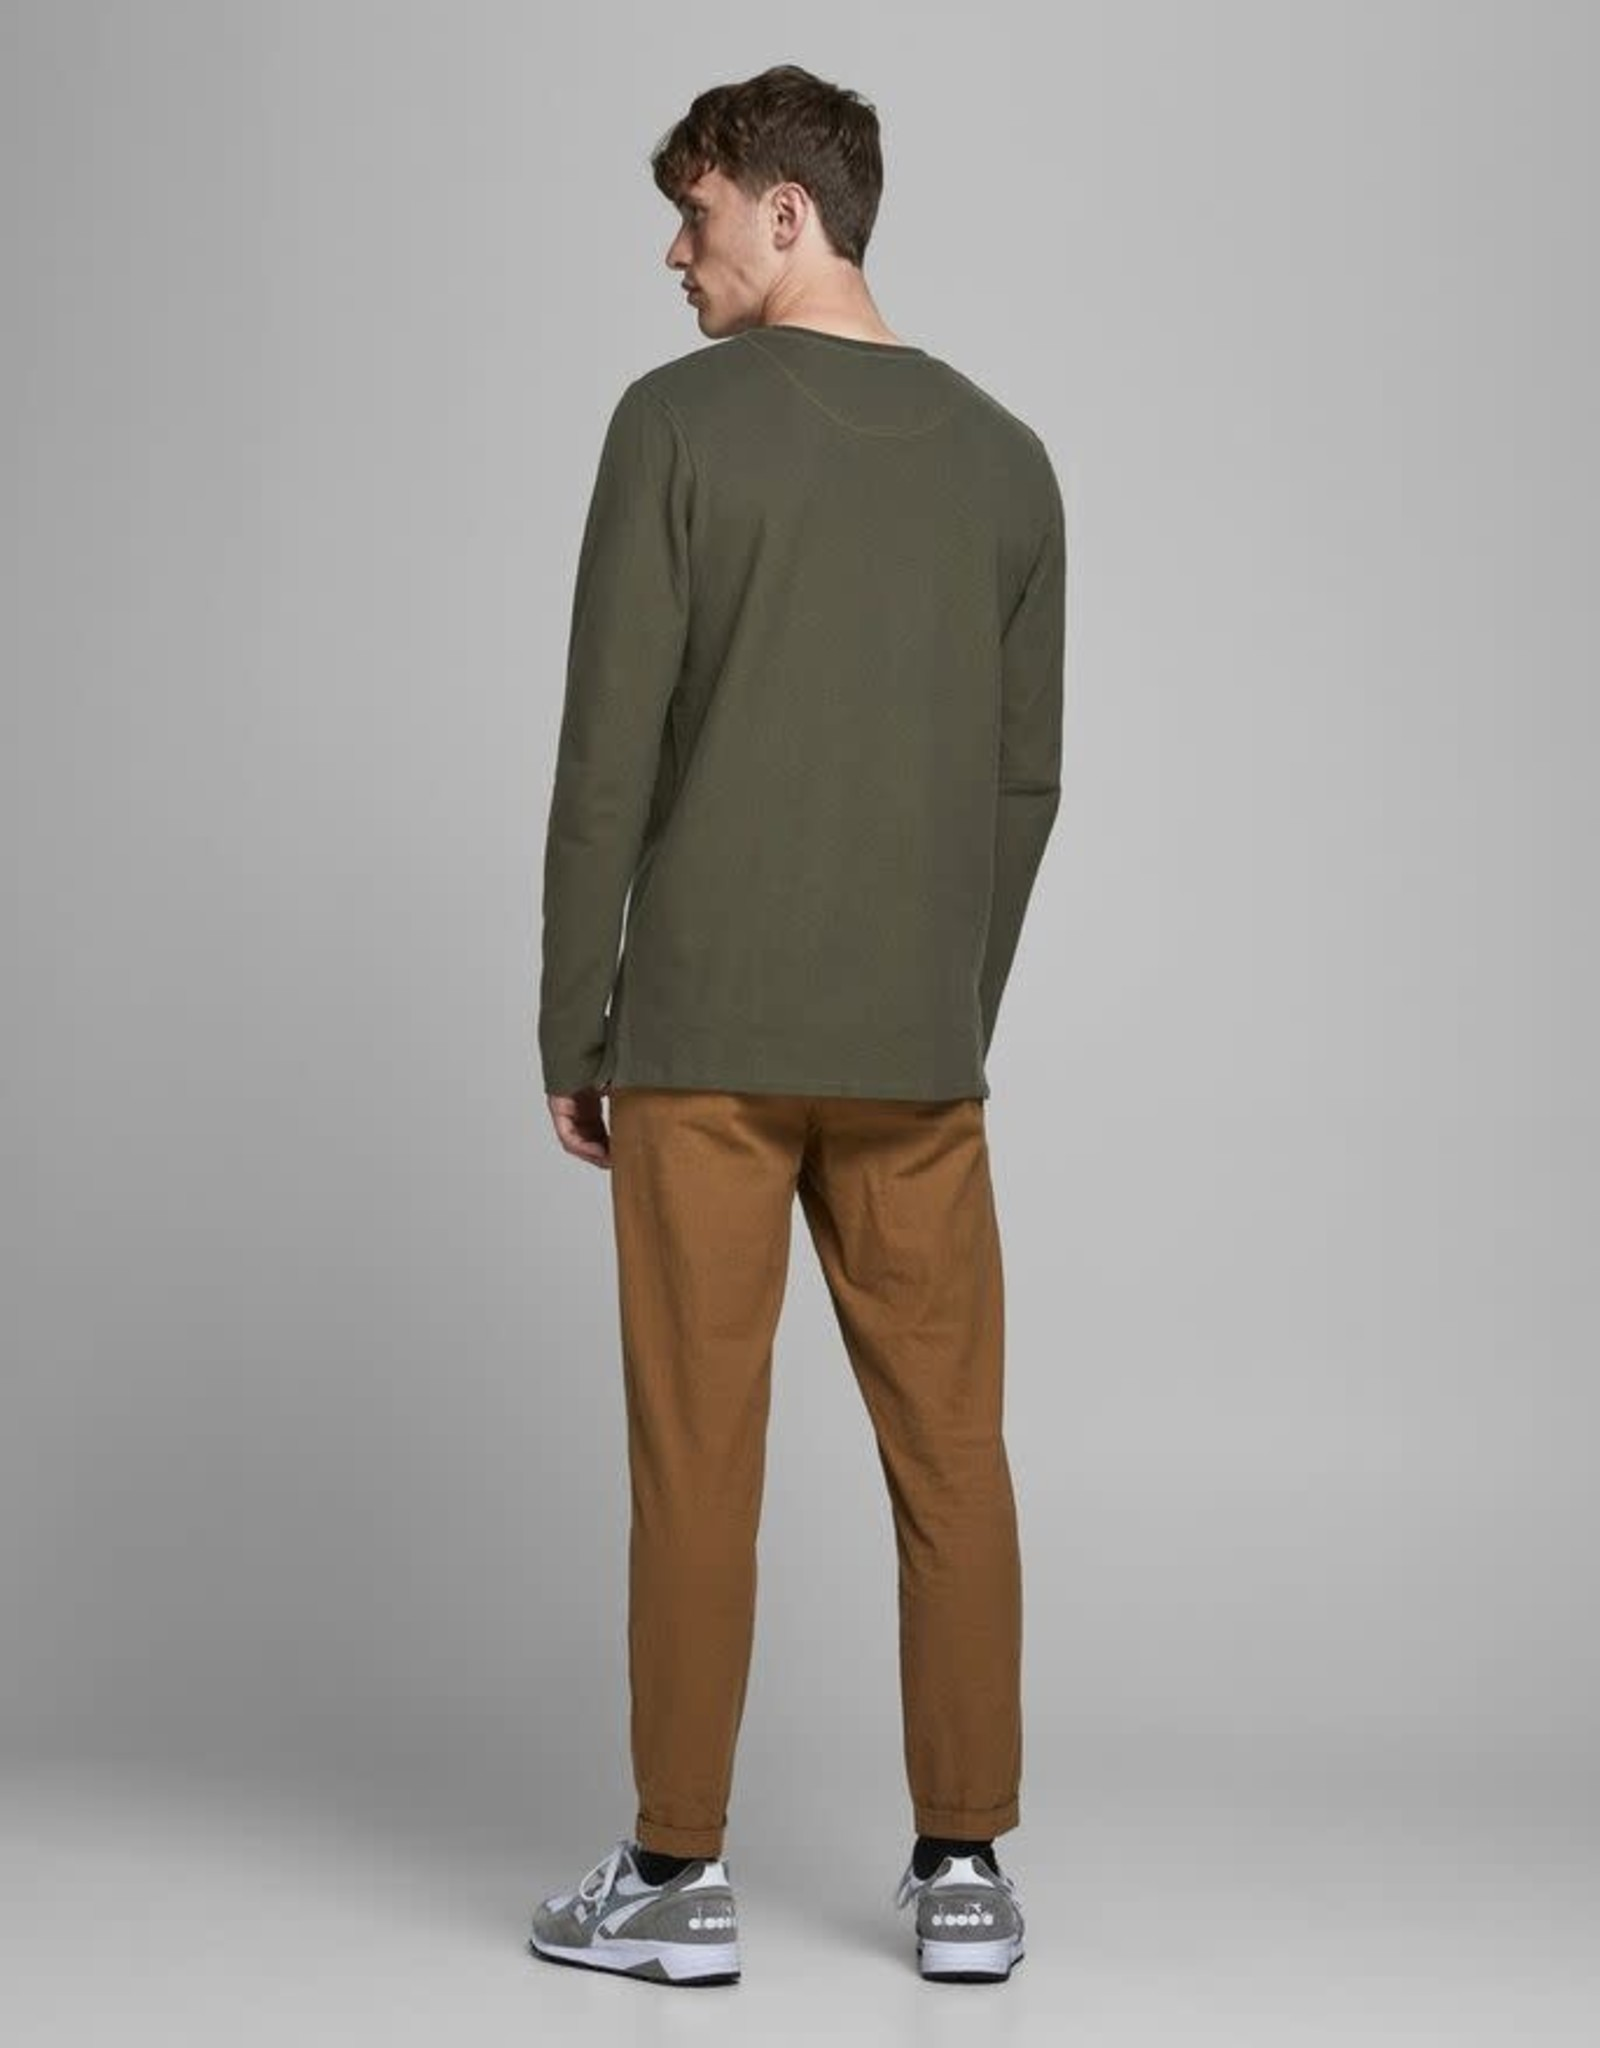 JACK & JONES Long Sleeve Henley T-Shirt